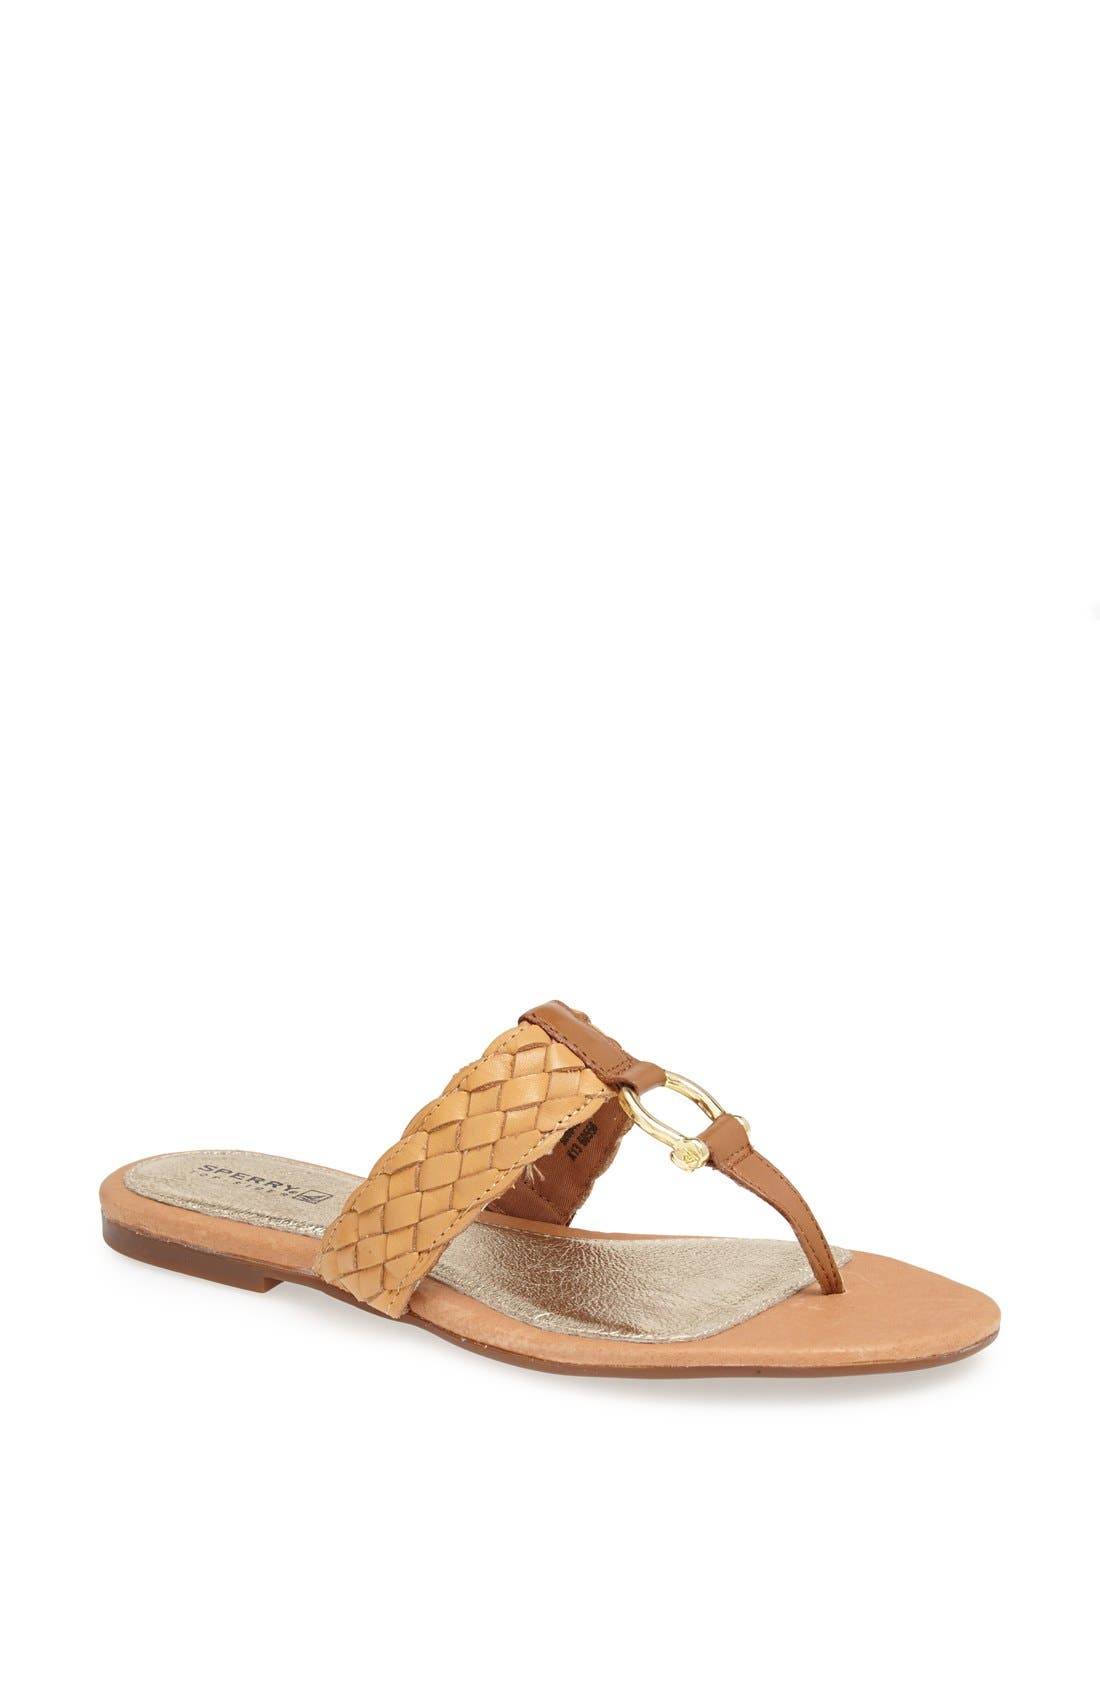 Main Image - Sperry Top-Sider® 'Carlin' Sandal